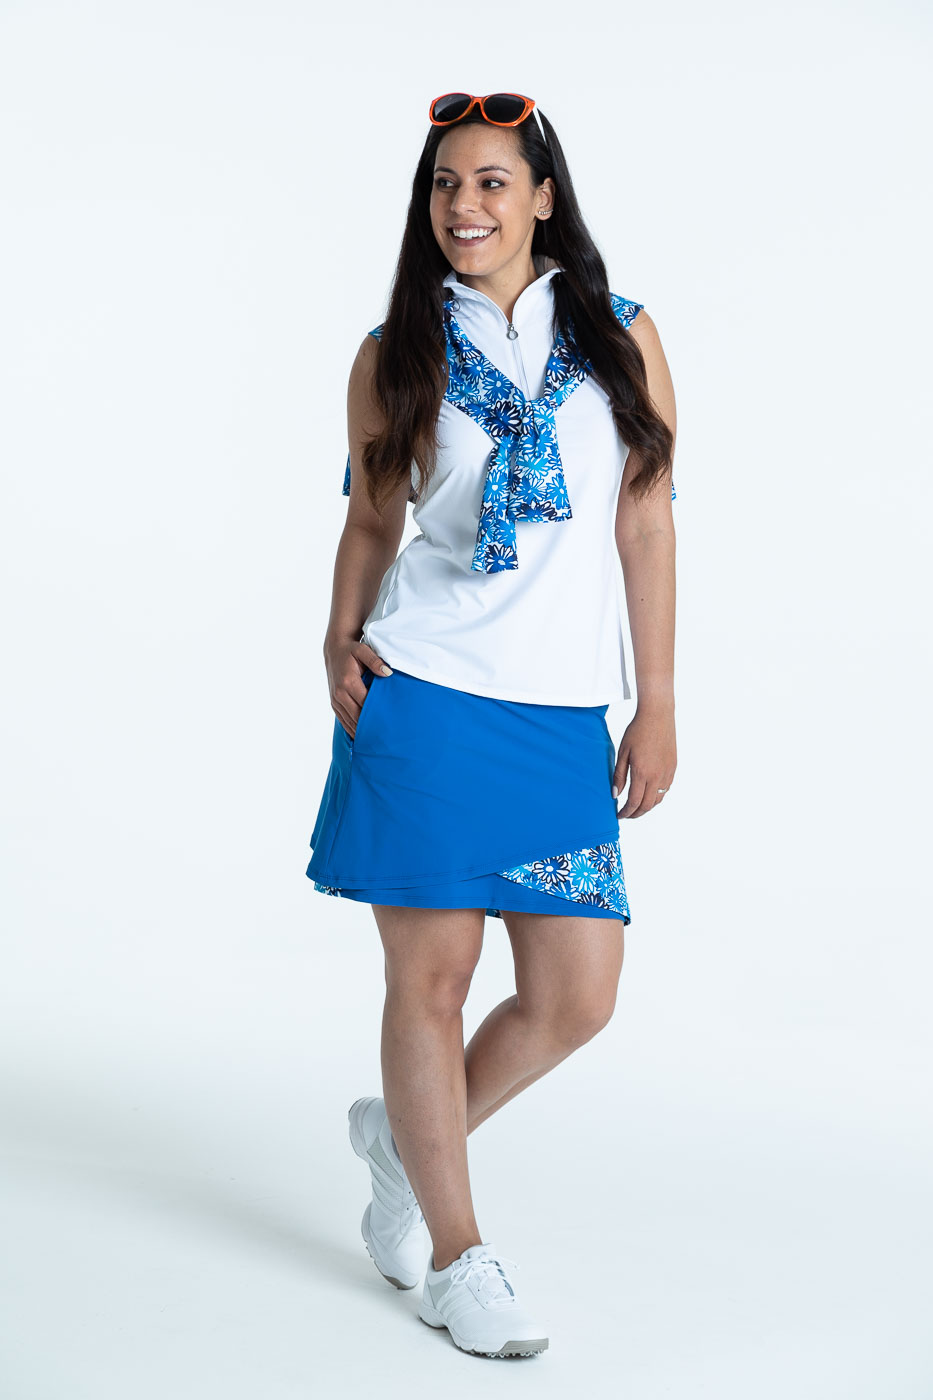 Smiling woman wearing a blueberry blue Wrap it Up golf skort and a white/white Keep it Covered sleeveless golf top